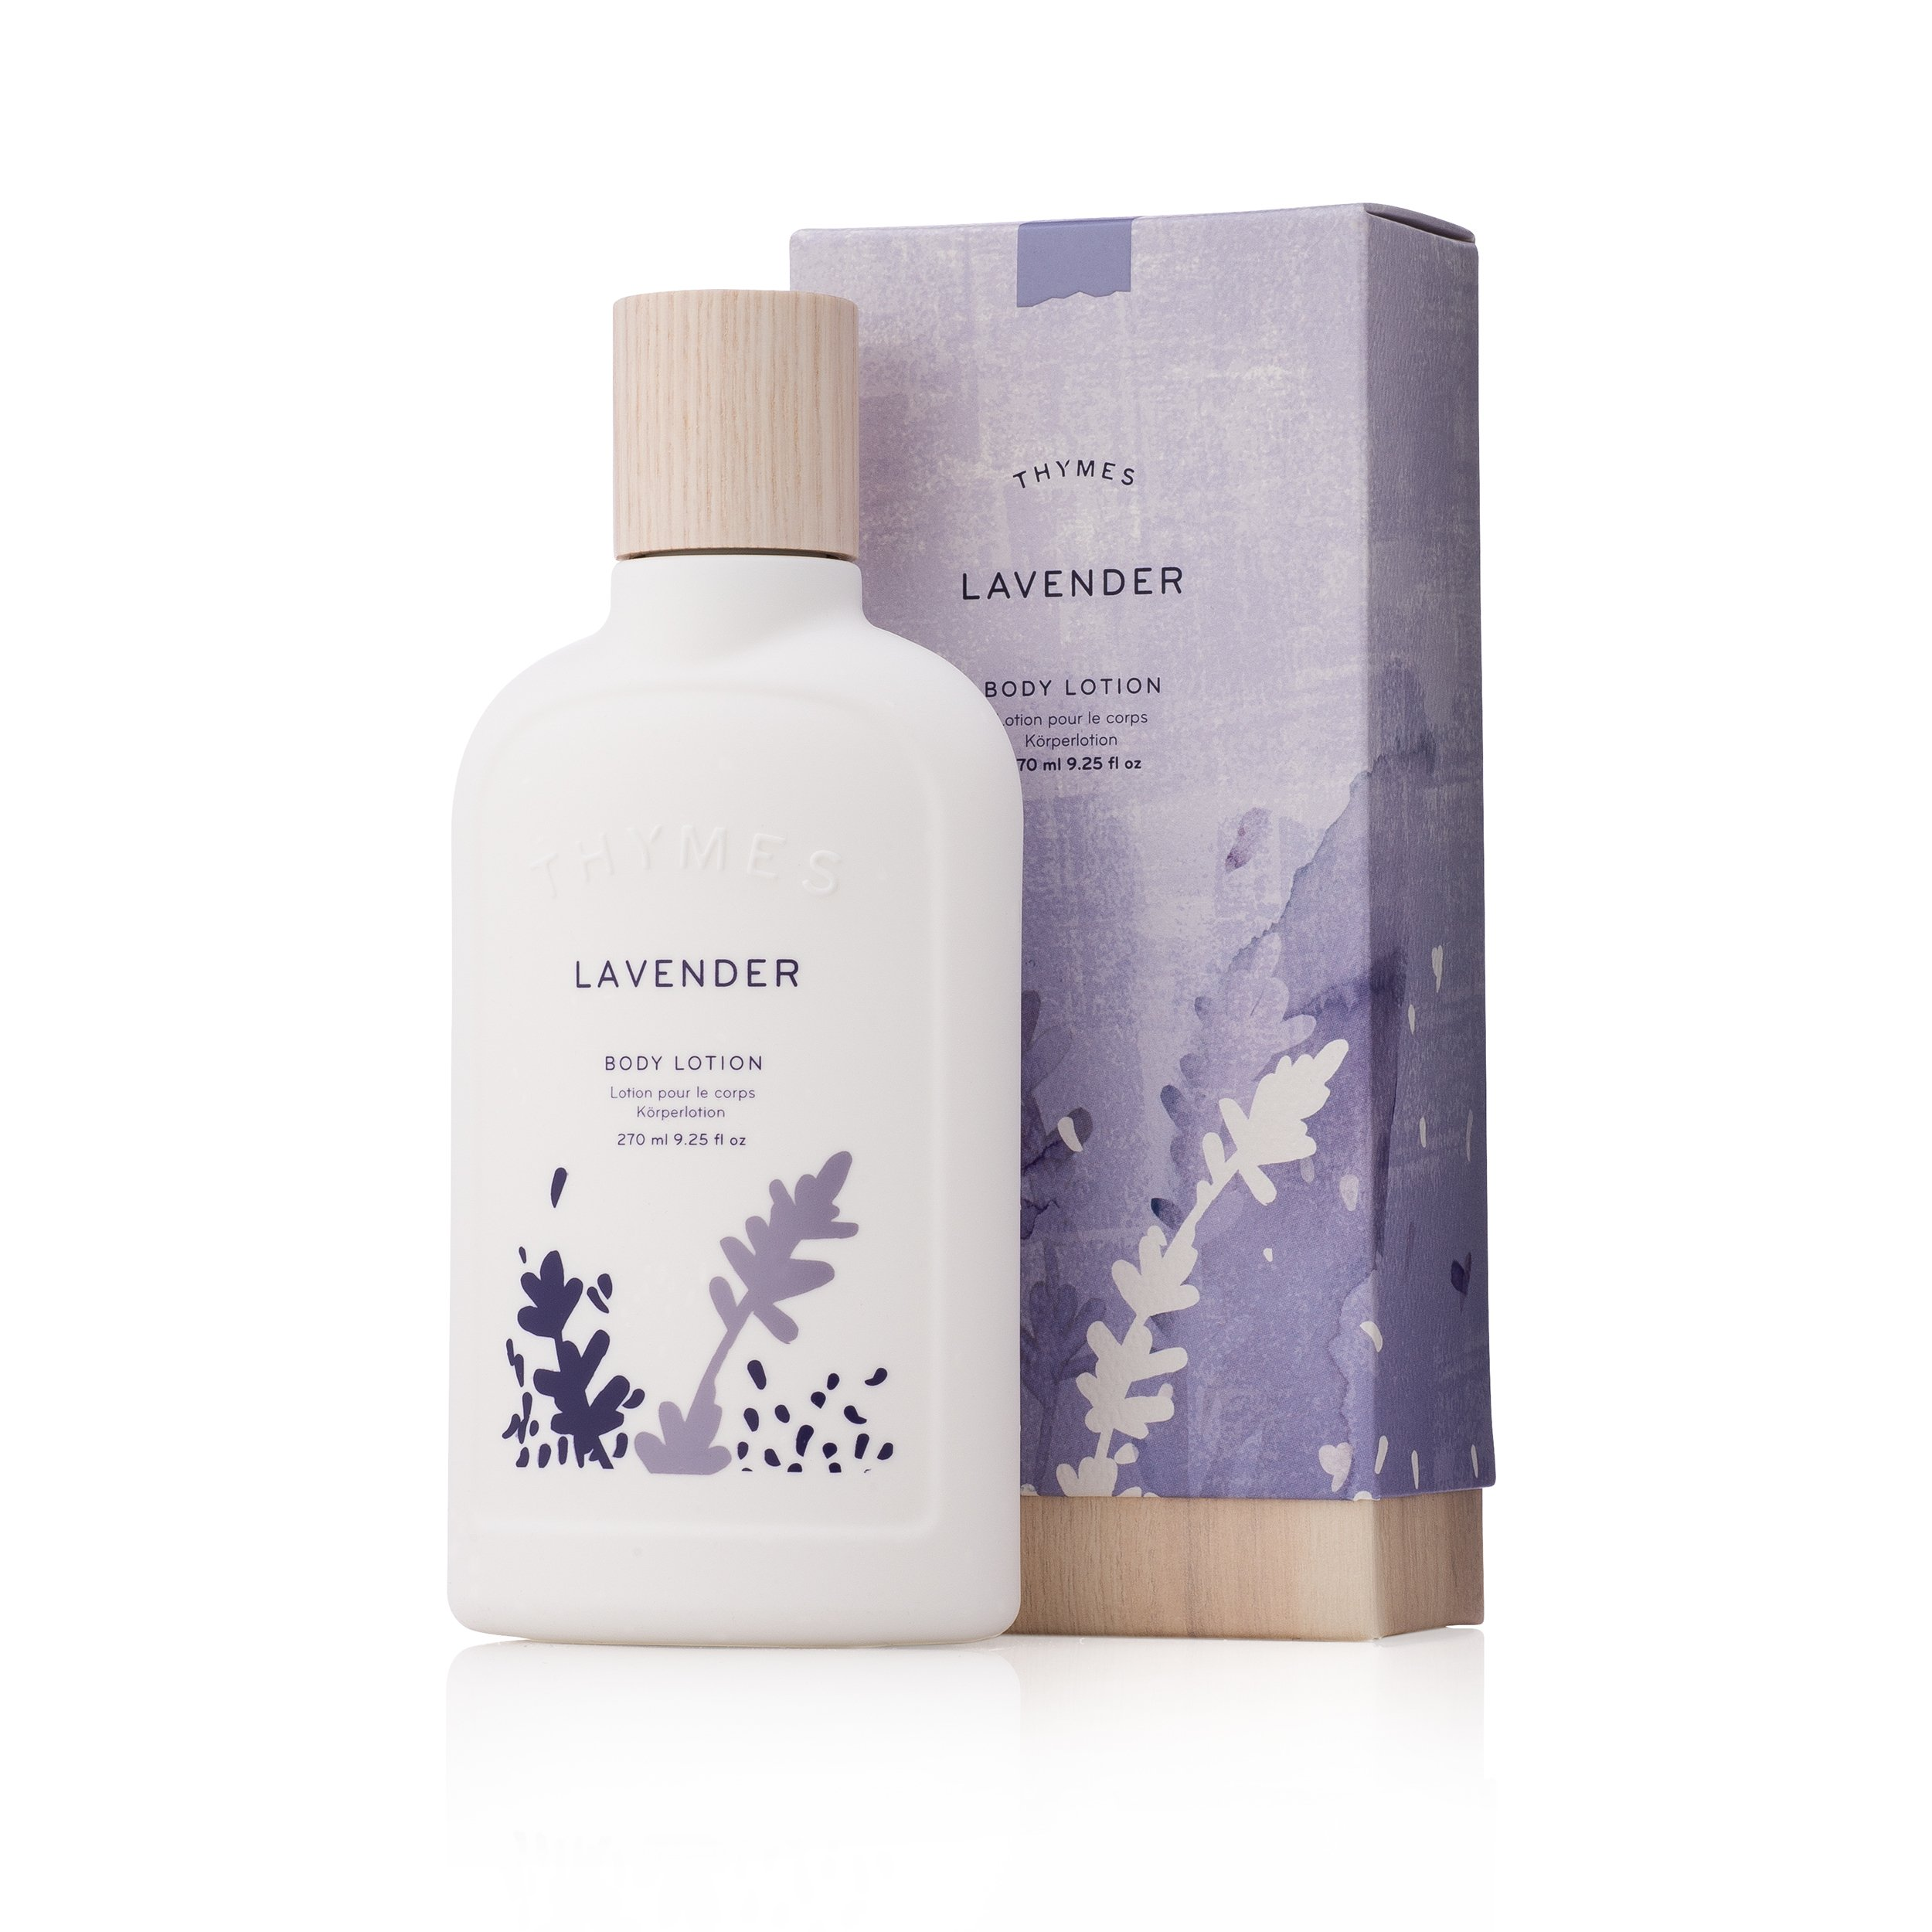 Thymes - Lavender Body Lotion - Relaxing Lavender Scent with Moisturizing Shea Butter and Vitamin E - 9.25 oz by Thymes